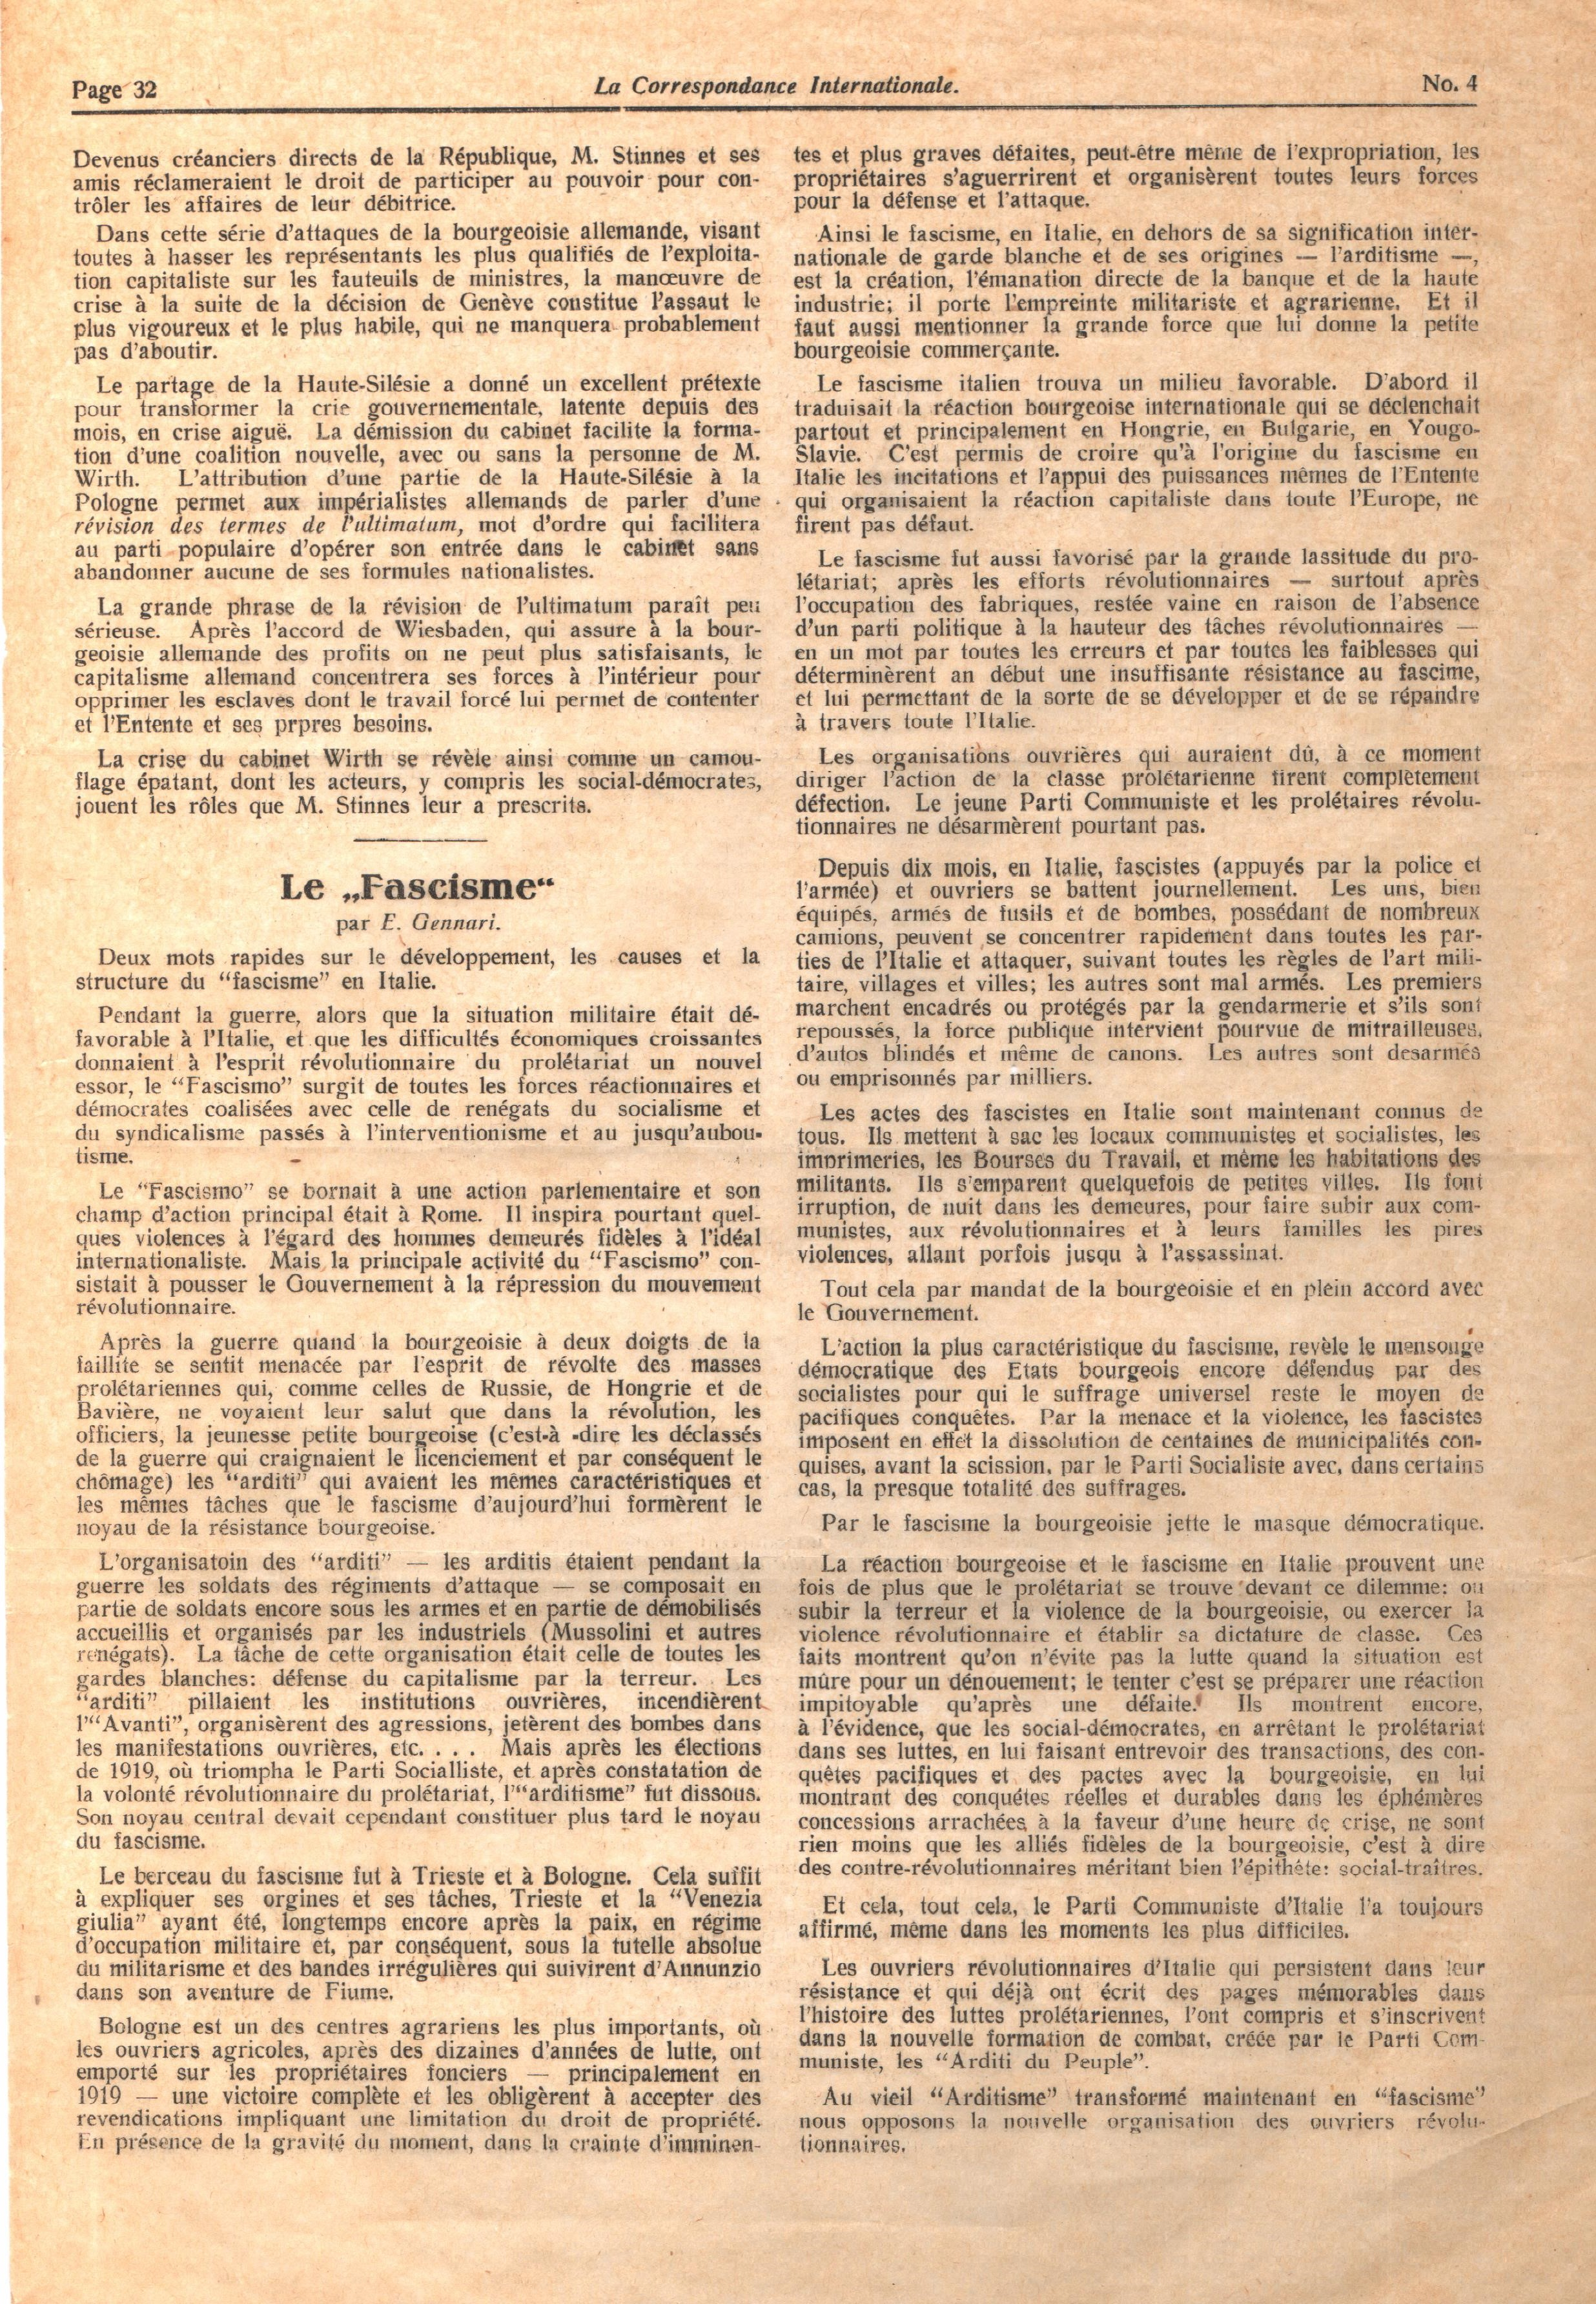 Correspondance Internationale n. 4 - pag. 4